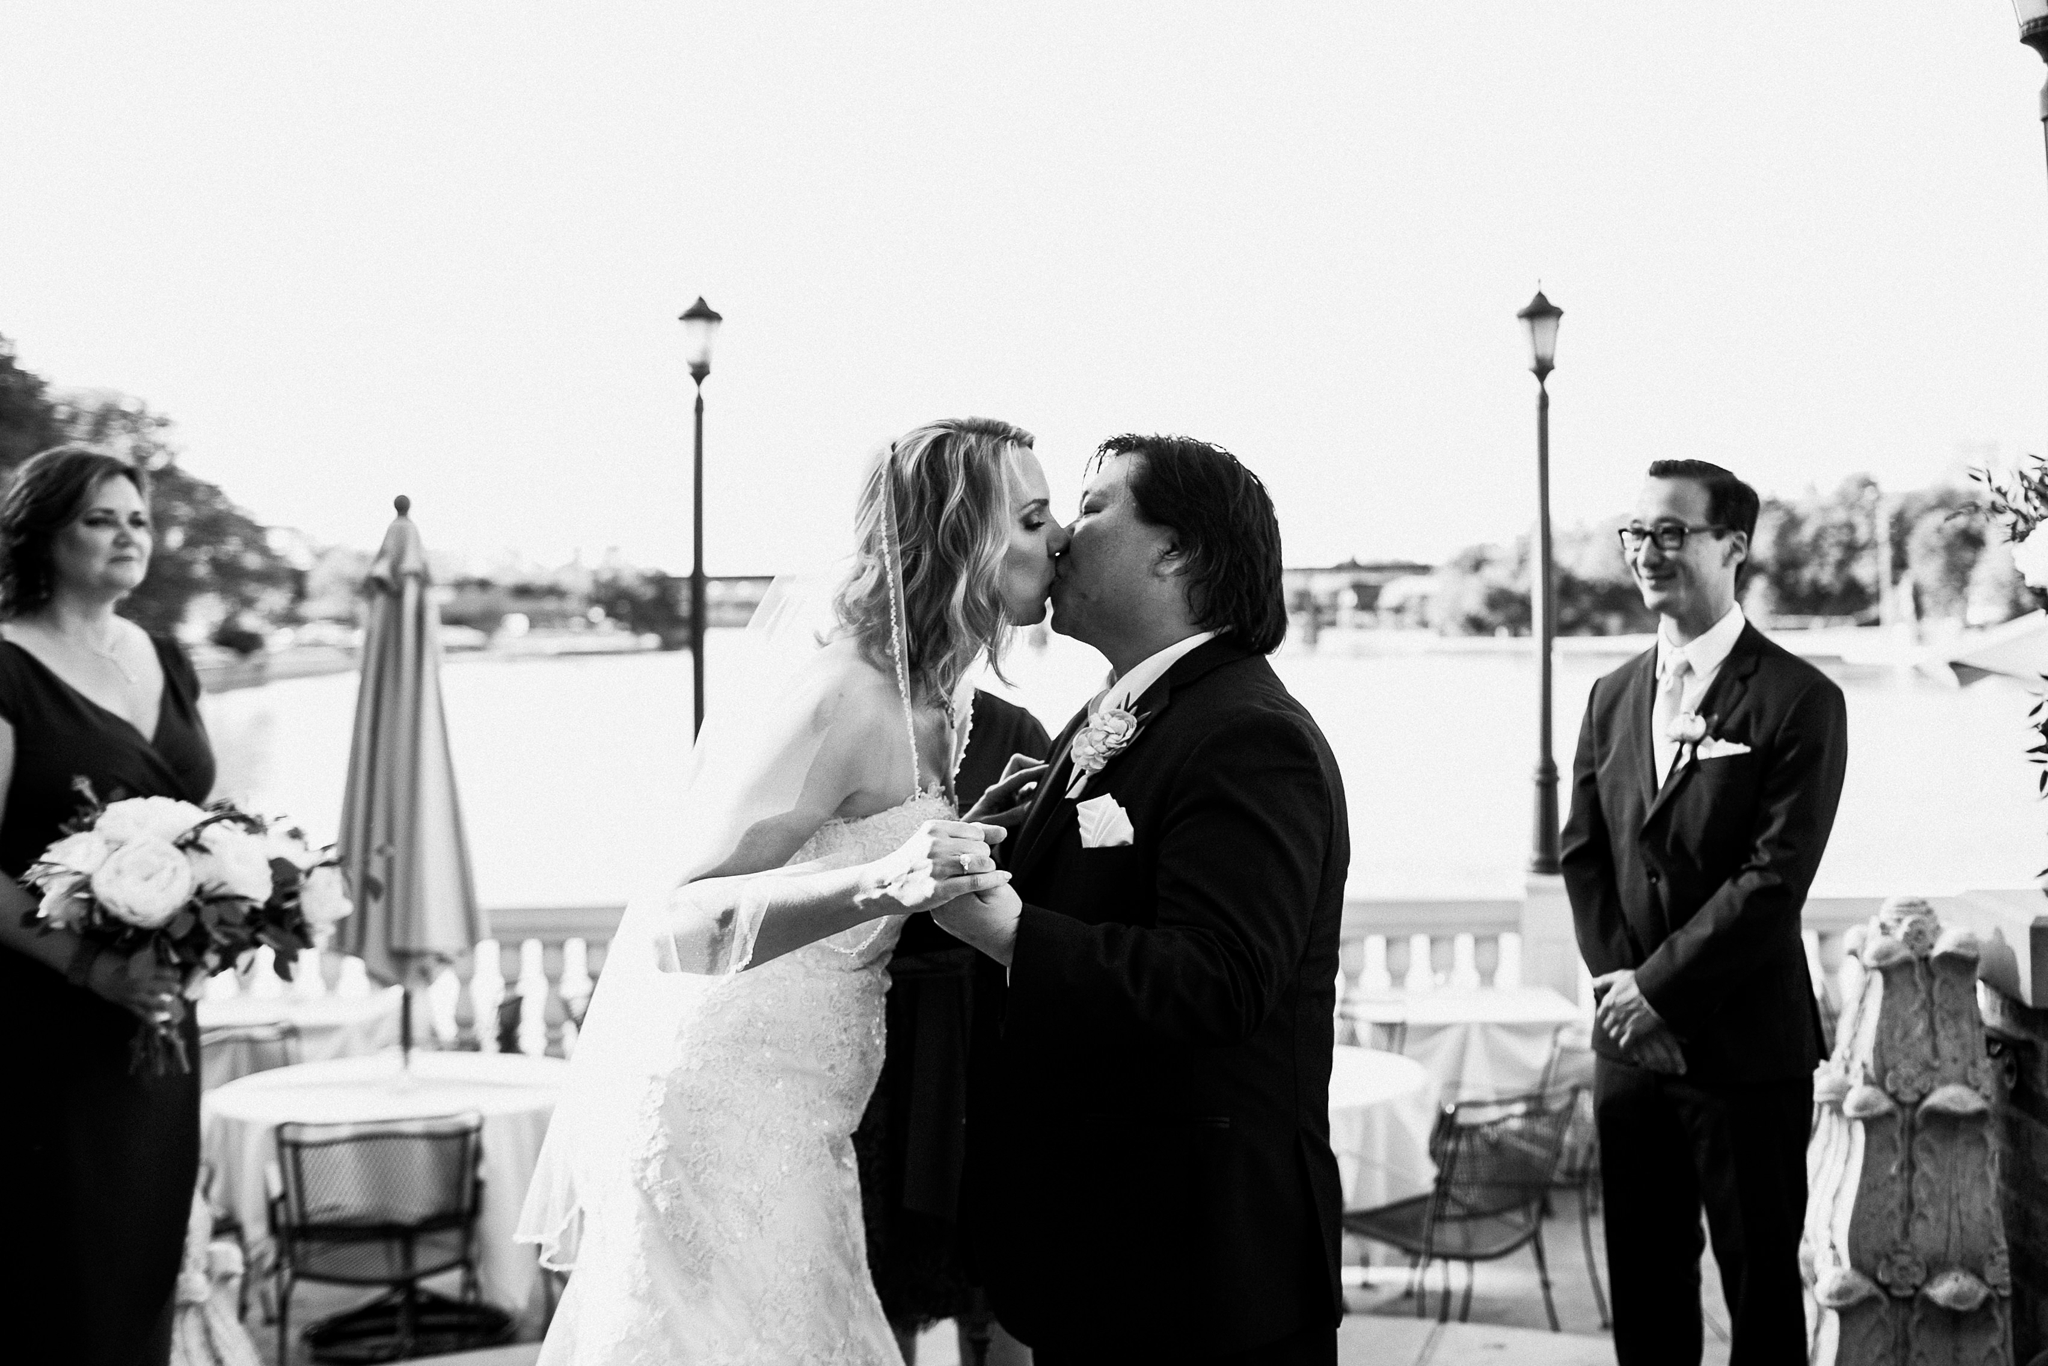 hotel_baker_st_charles_IL_wedding_photographer_0056.jpg